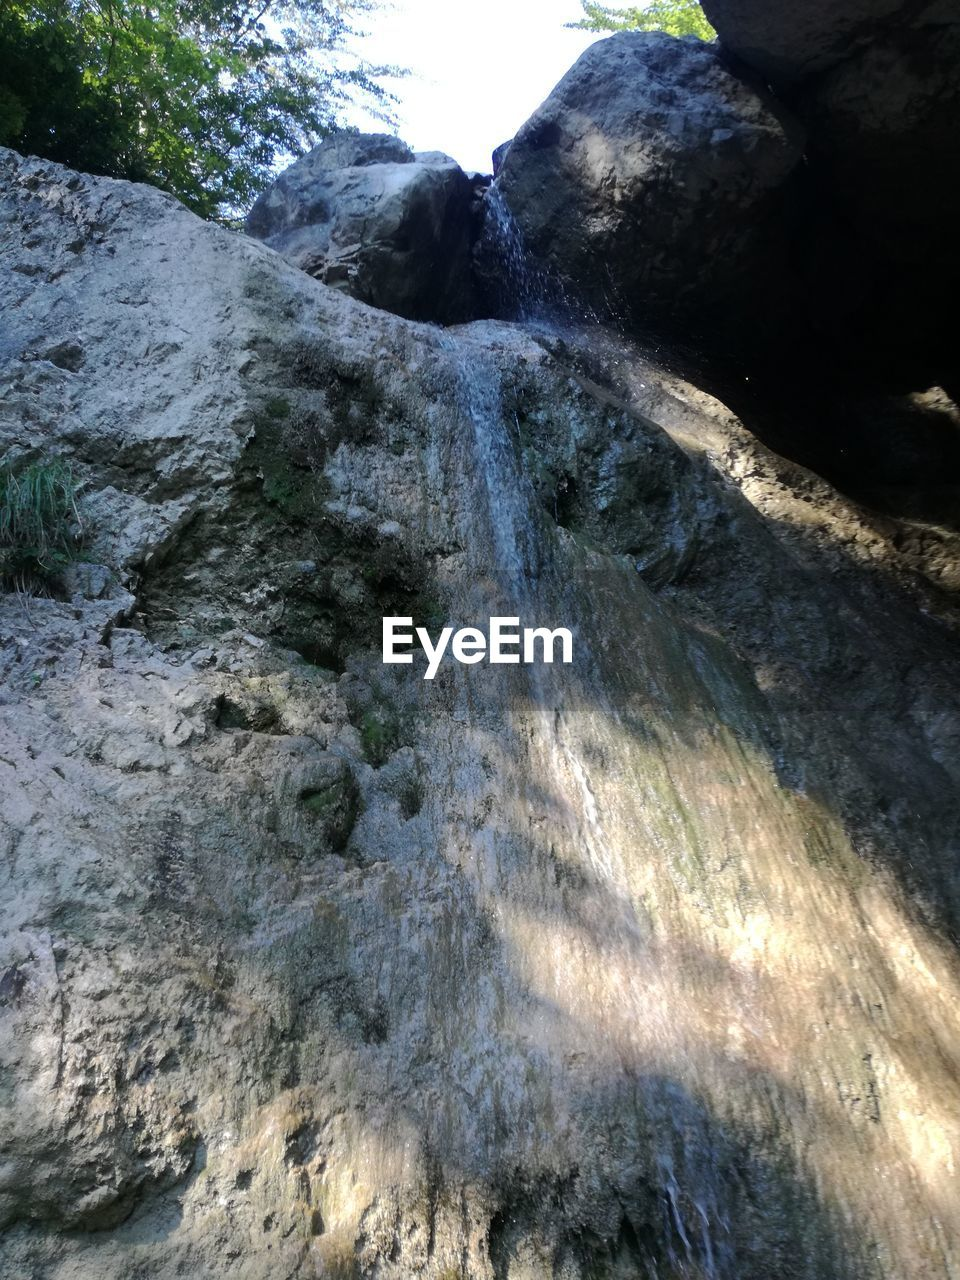 rock - object, nature, rock formation, geology, beauty in nature, low angle view, day, no people, physical geography, outdoors, tranquility, scenics, textured, waterfall, mountain, water, close-up